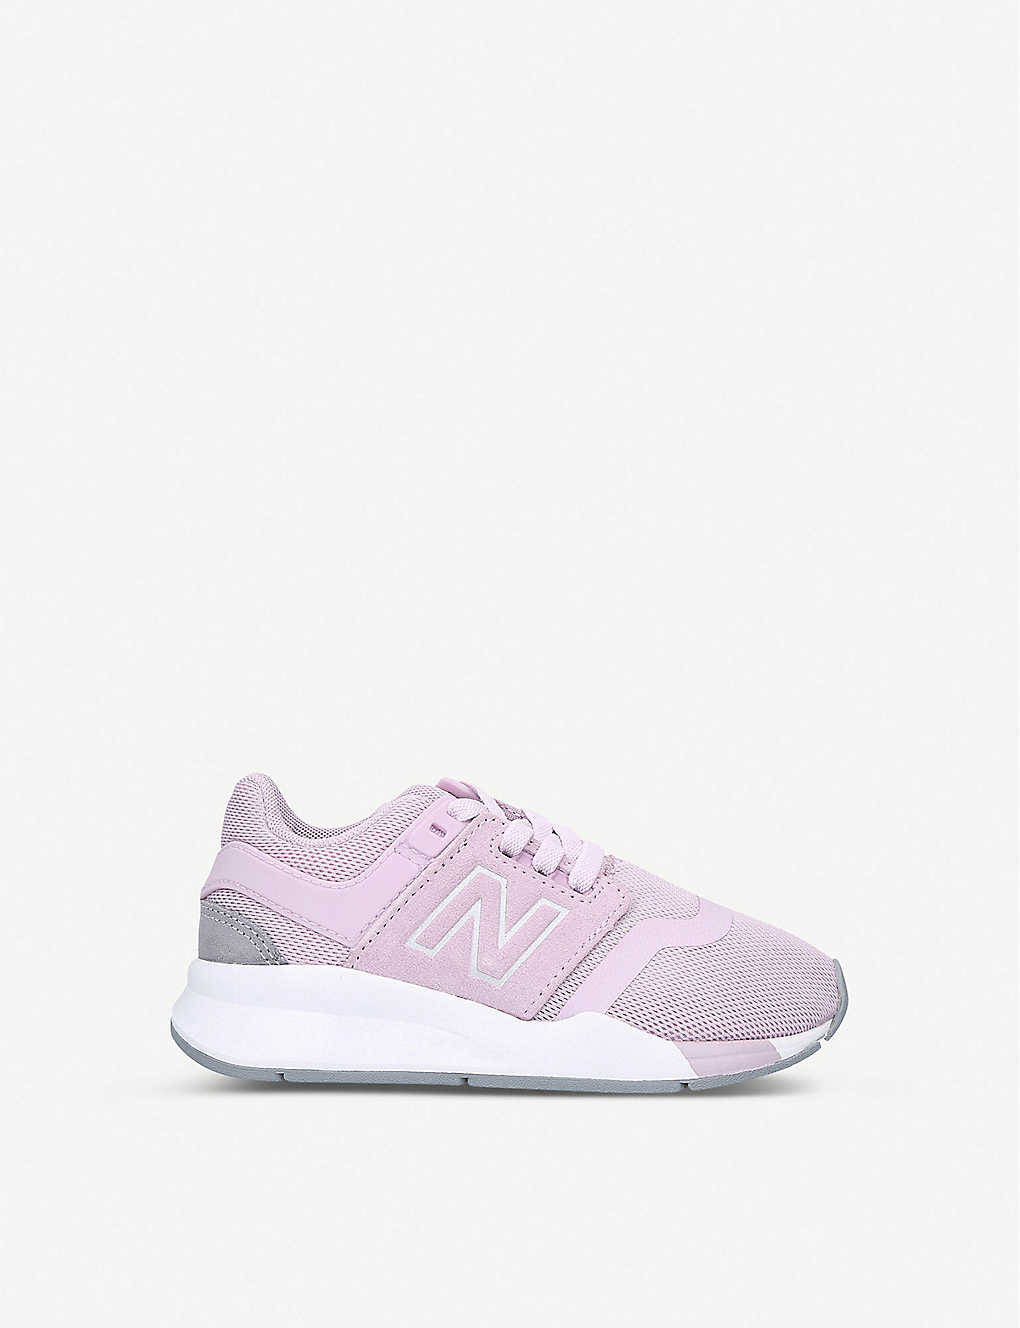 NEW BALANCE: 247 V2 mesh trainers 6-8 years